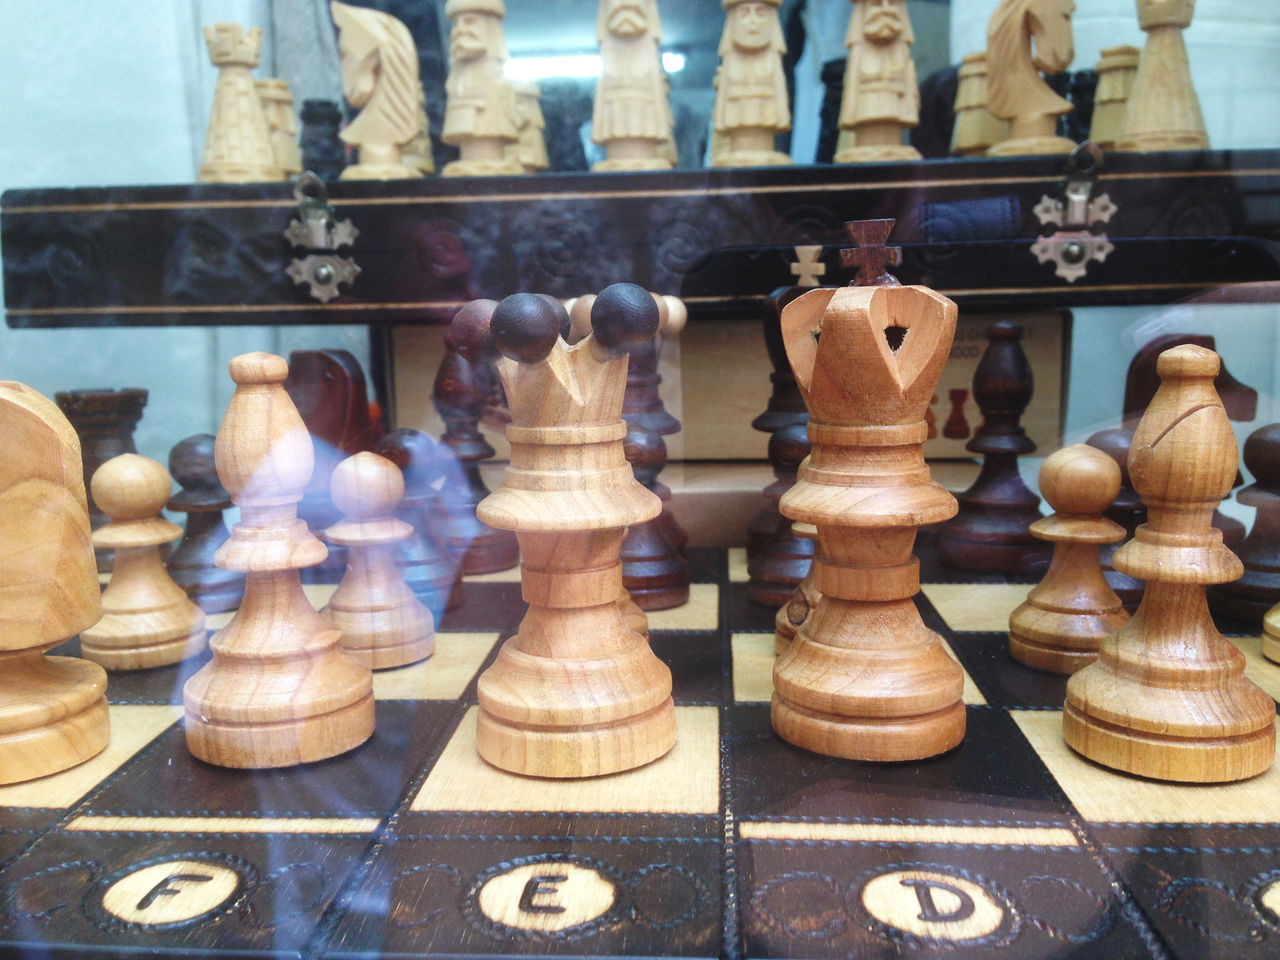 chess, chess piece, knight - chess piece, indoors, strategy, chess board, close-up, day, no people, king - chess piece, queen - chess piece